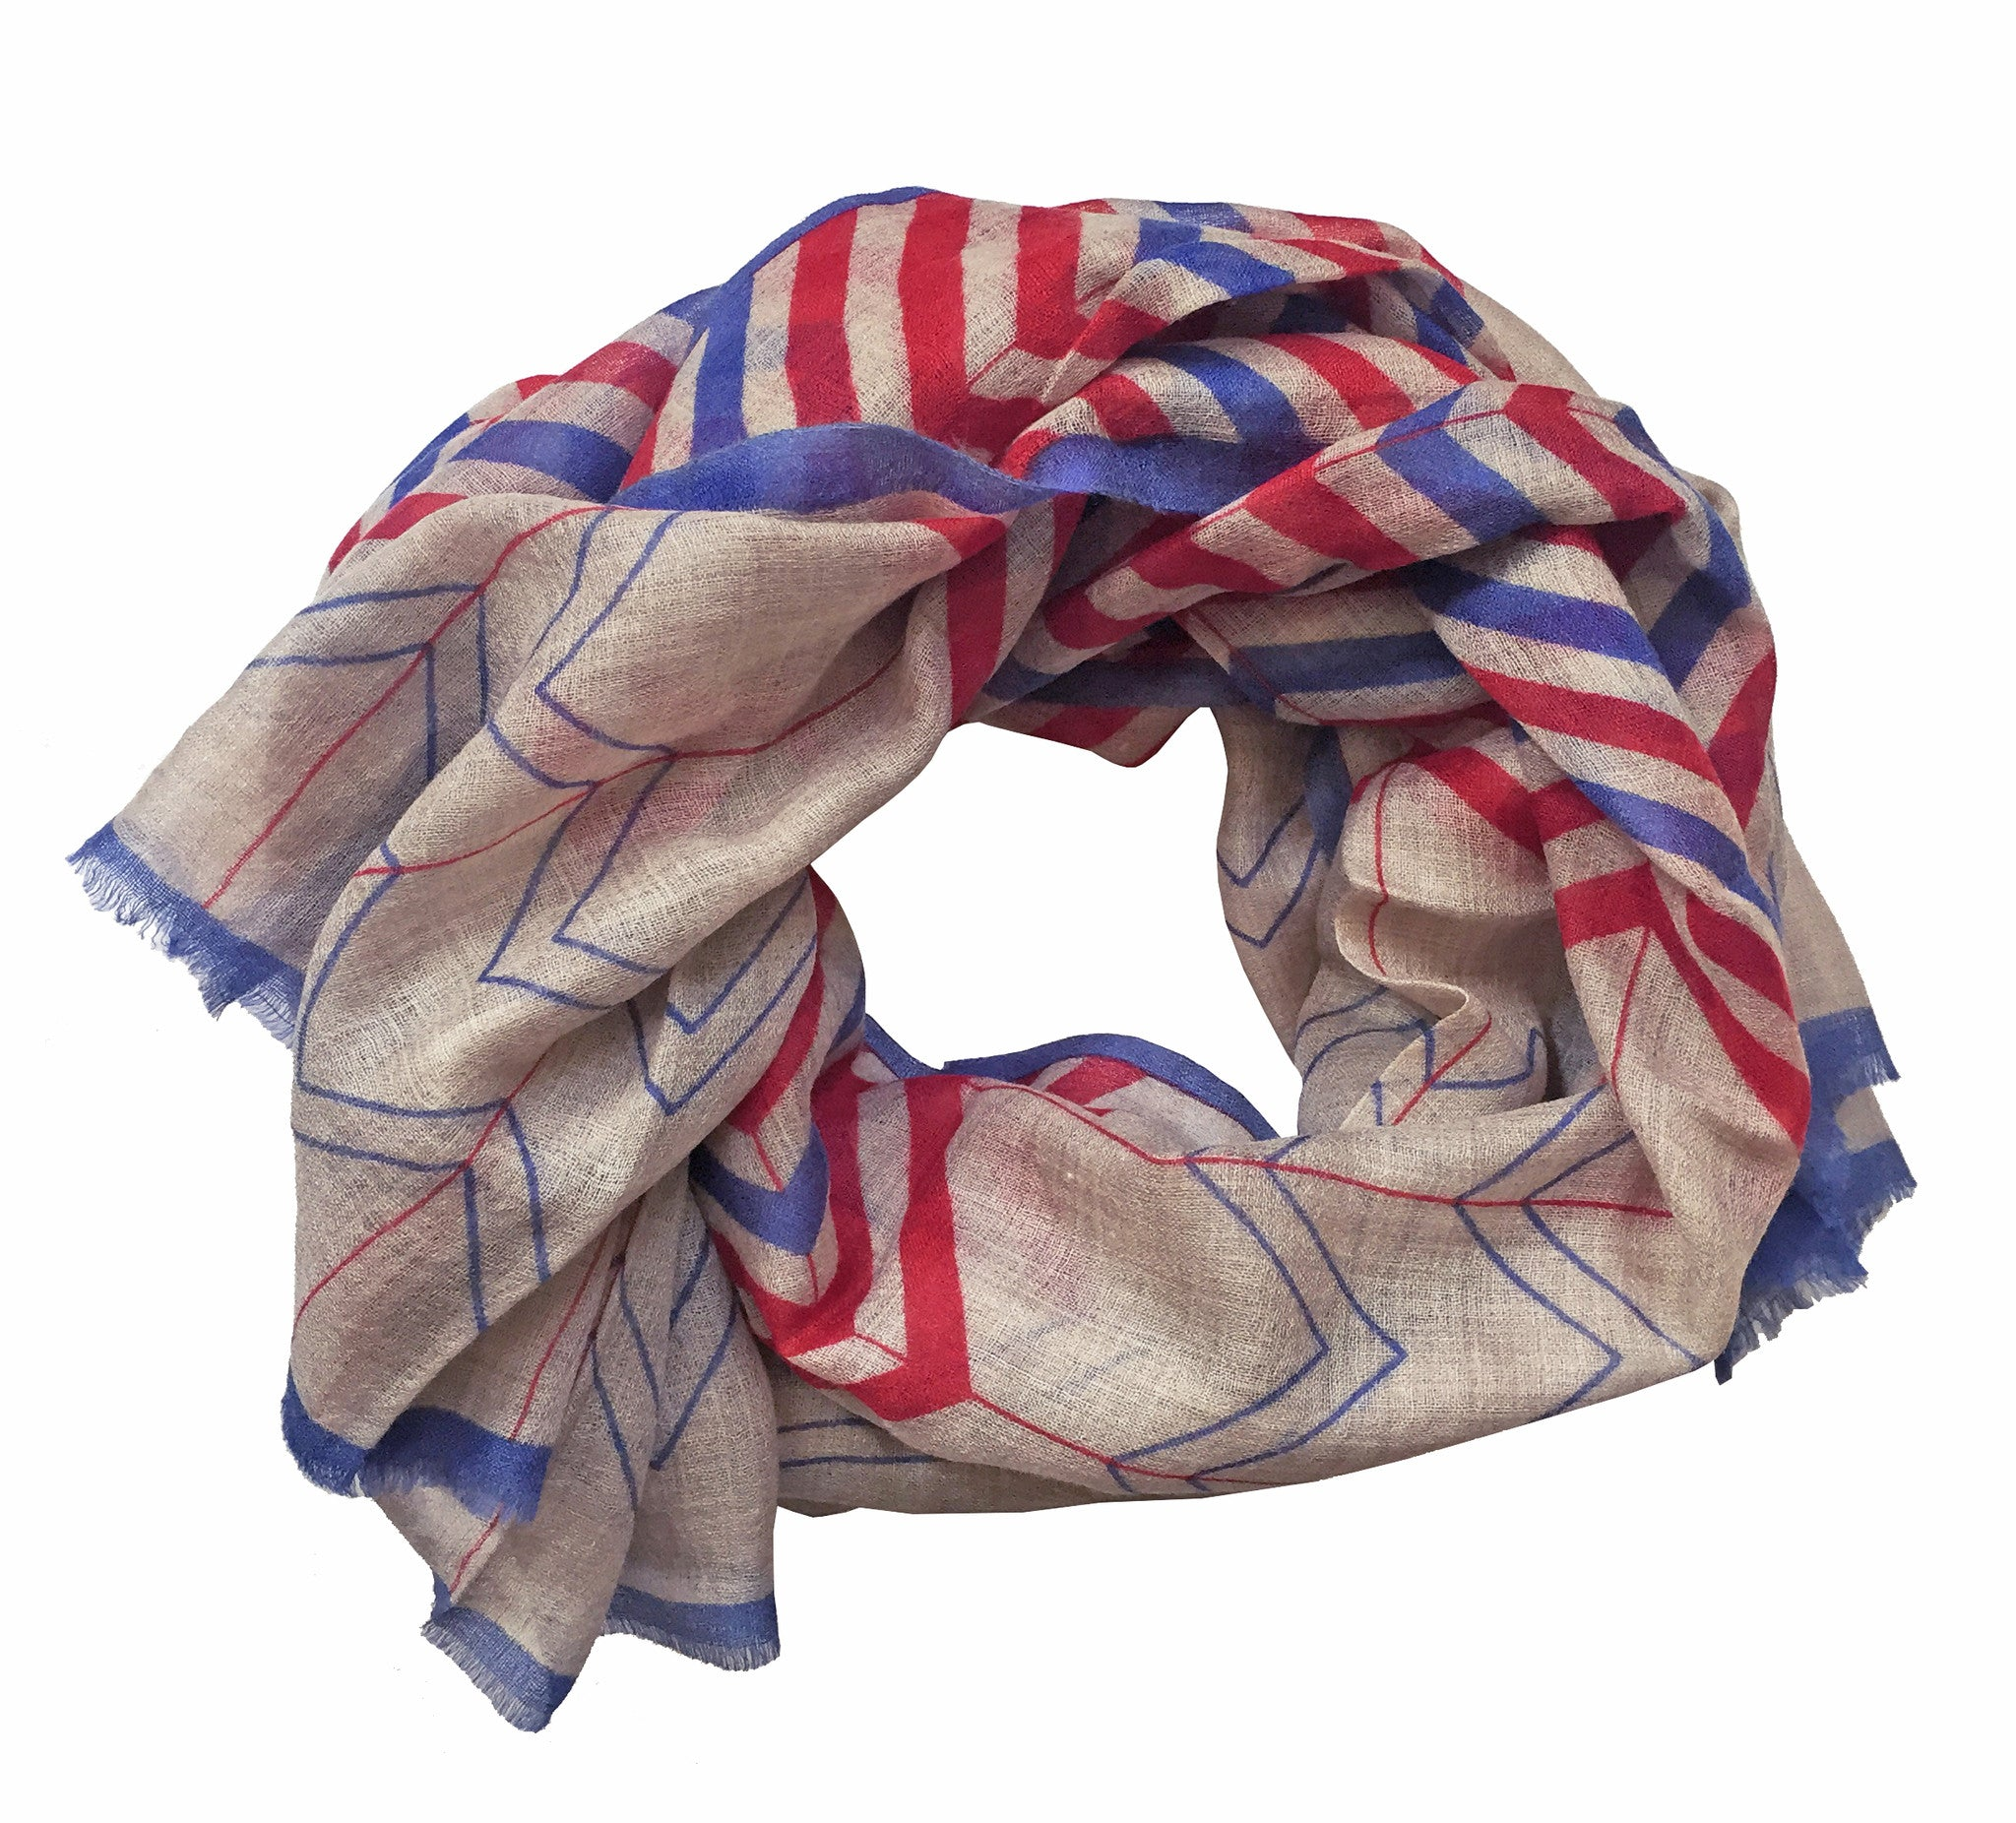 SKY Chevron Scarf - Red/Amparo Blue/Sand